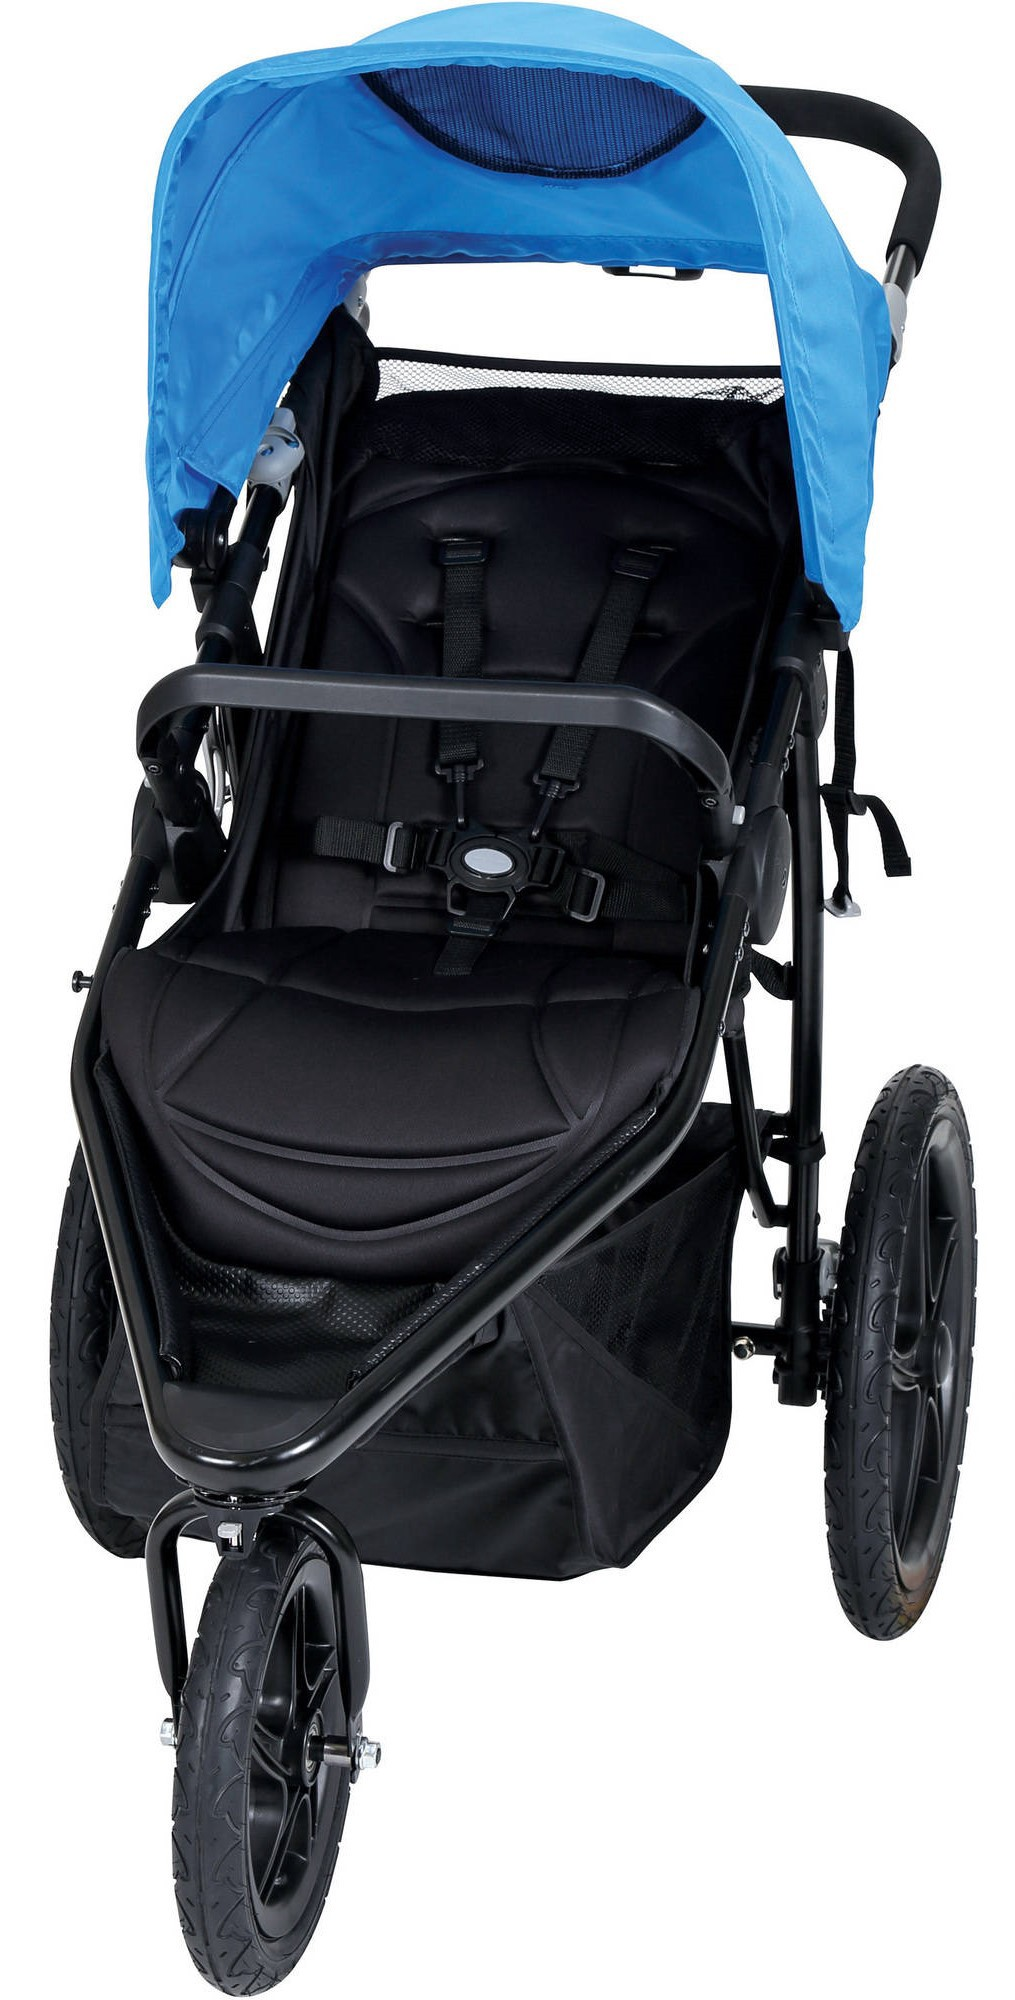 Baby Trend Stealth Jogger Travel System